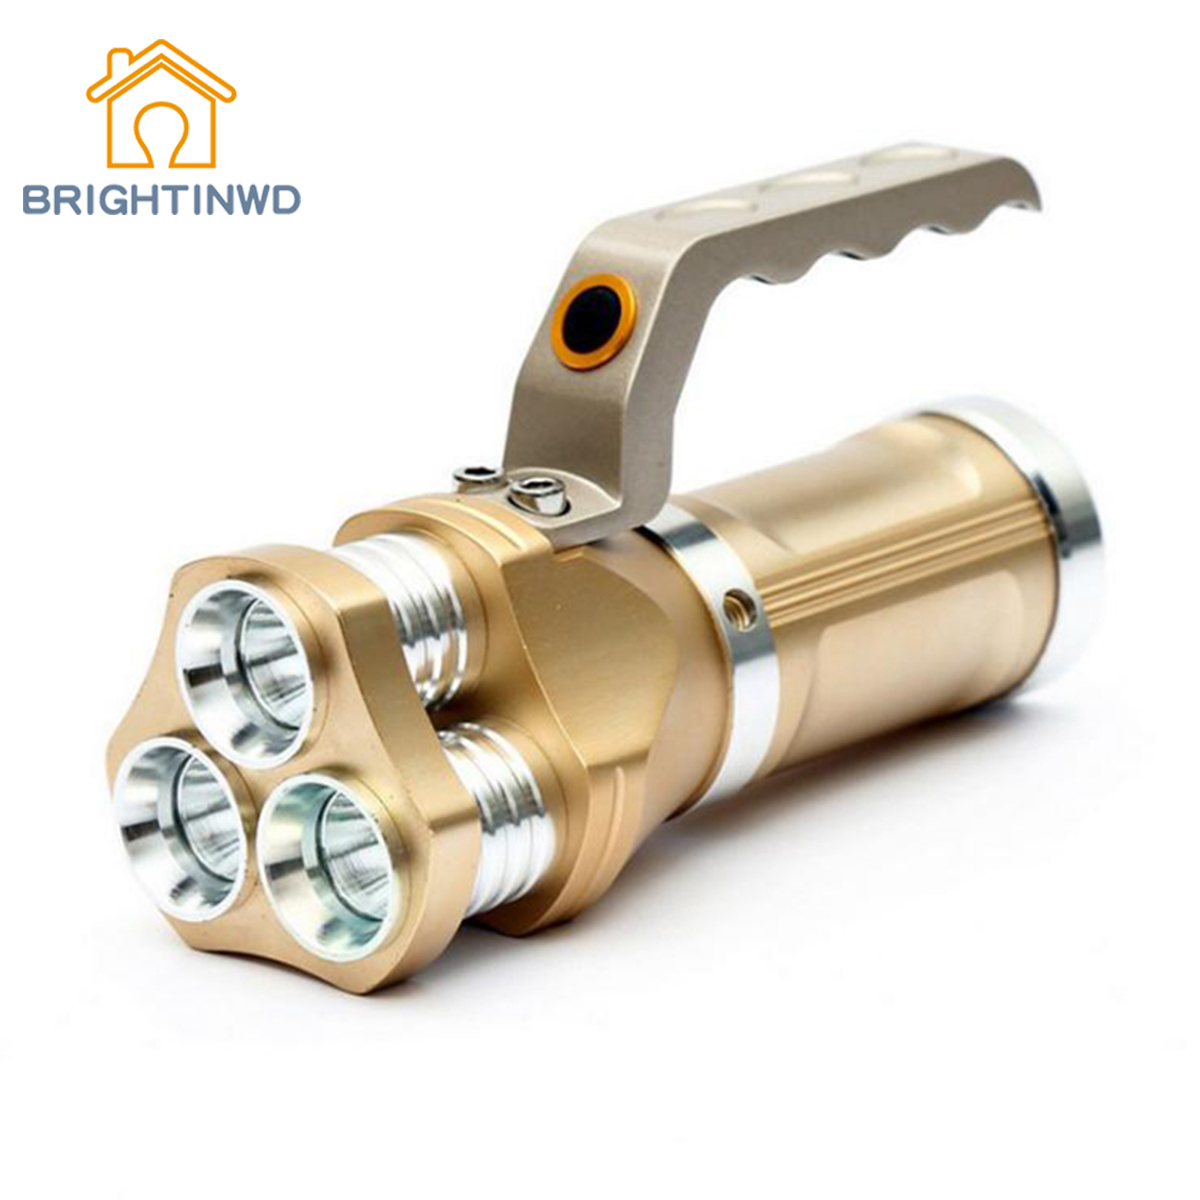 BRIGHTINWD Powerful Portable LED Flashlight T6 5 Modes Torch Powerful Camping Hunting Lamp Torch Flashlight Camping Lamp 10t6 2000 lumen 10 cree xml t6 led light ultra bright flashlight portable 5 modes powerful led flashlight torch camping hunting